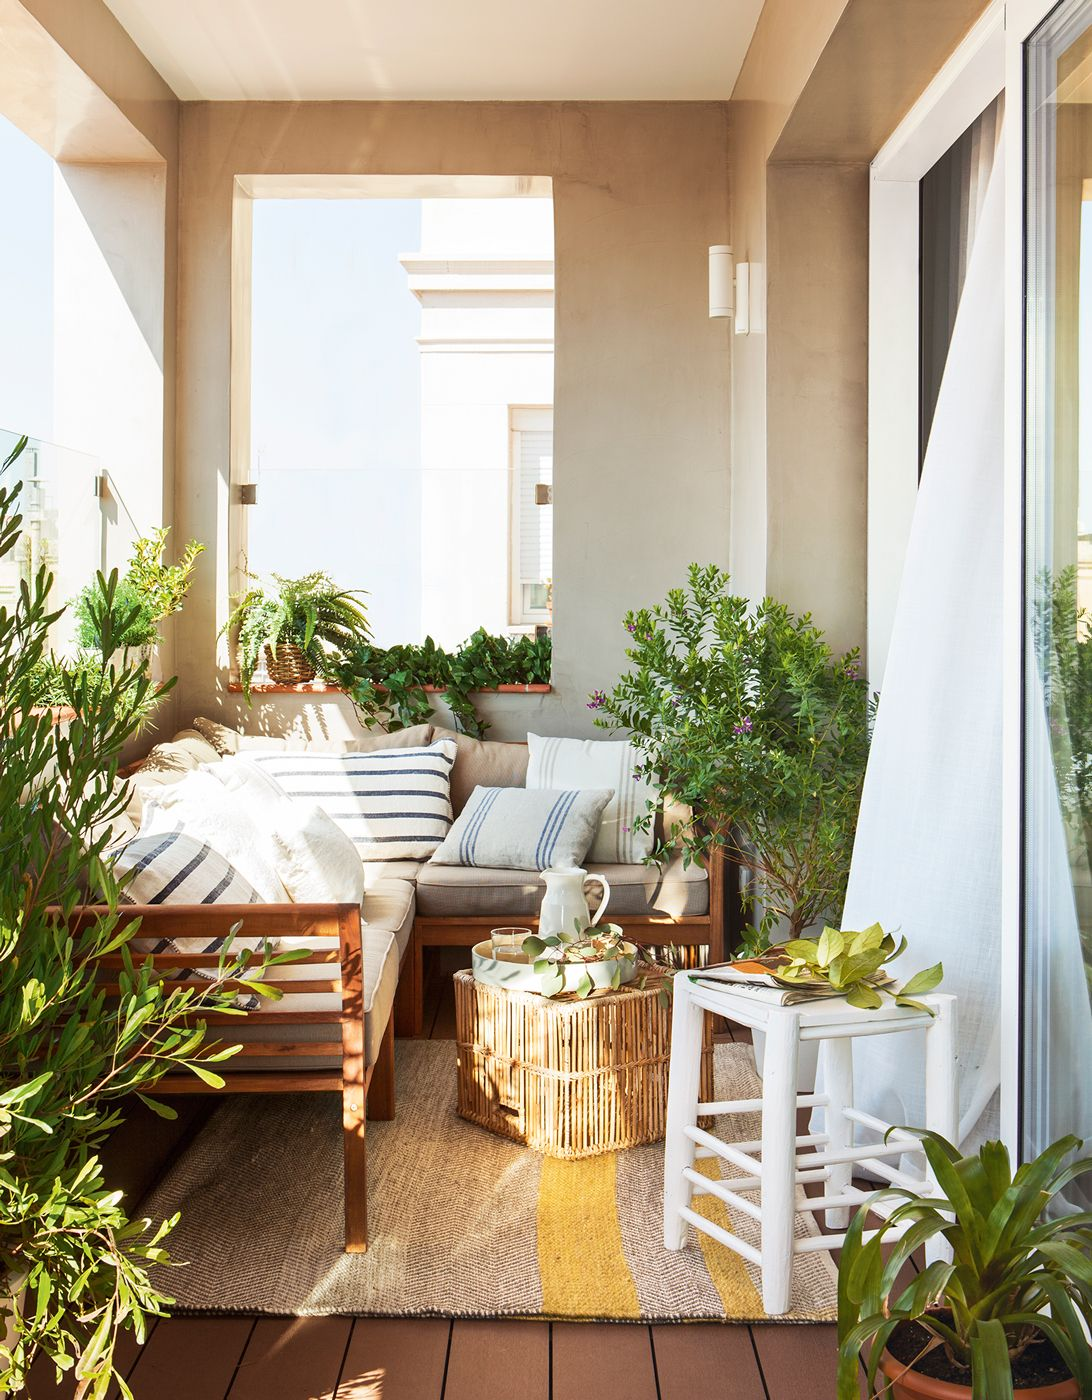 Decorar Un Porche Con Plantas A Cubierto En 2019 Decor Pinterest Decoracion